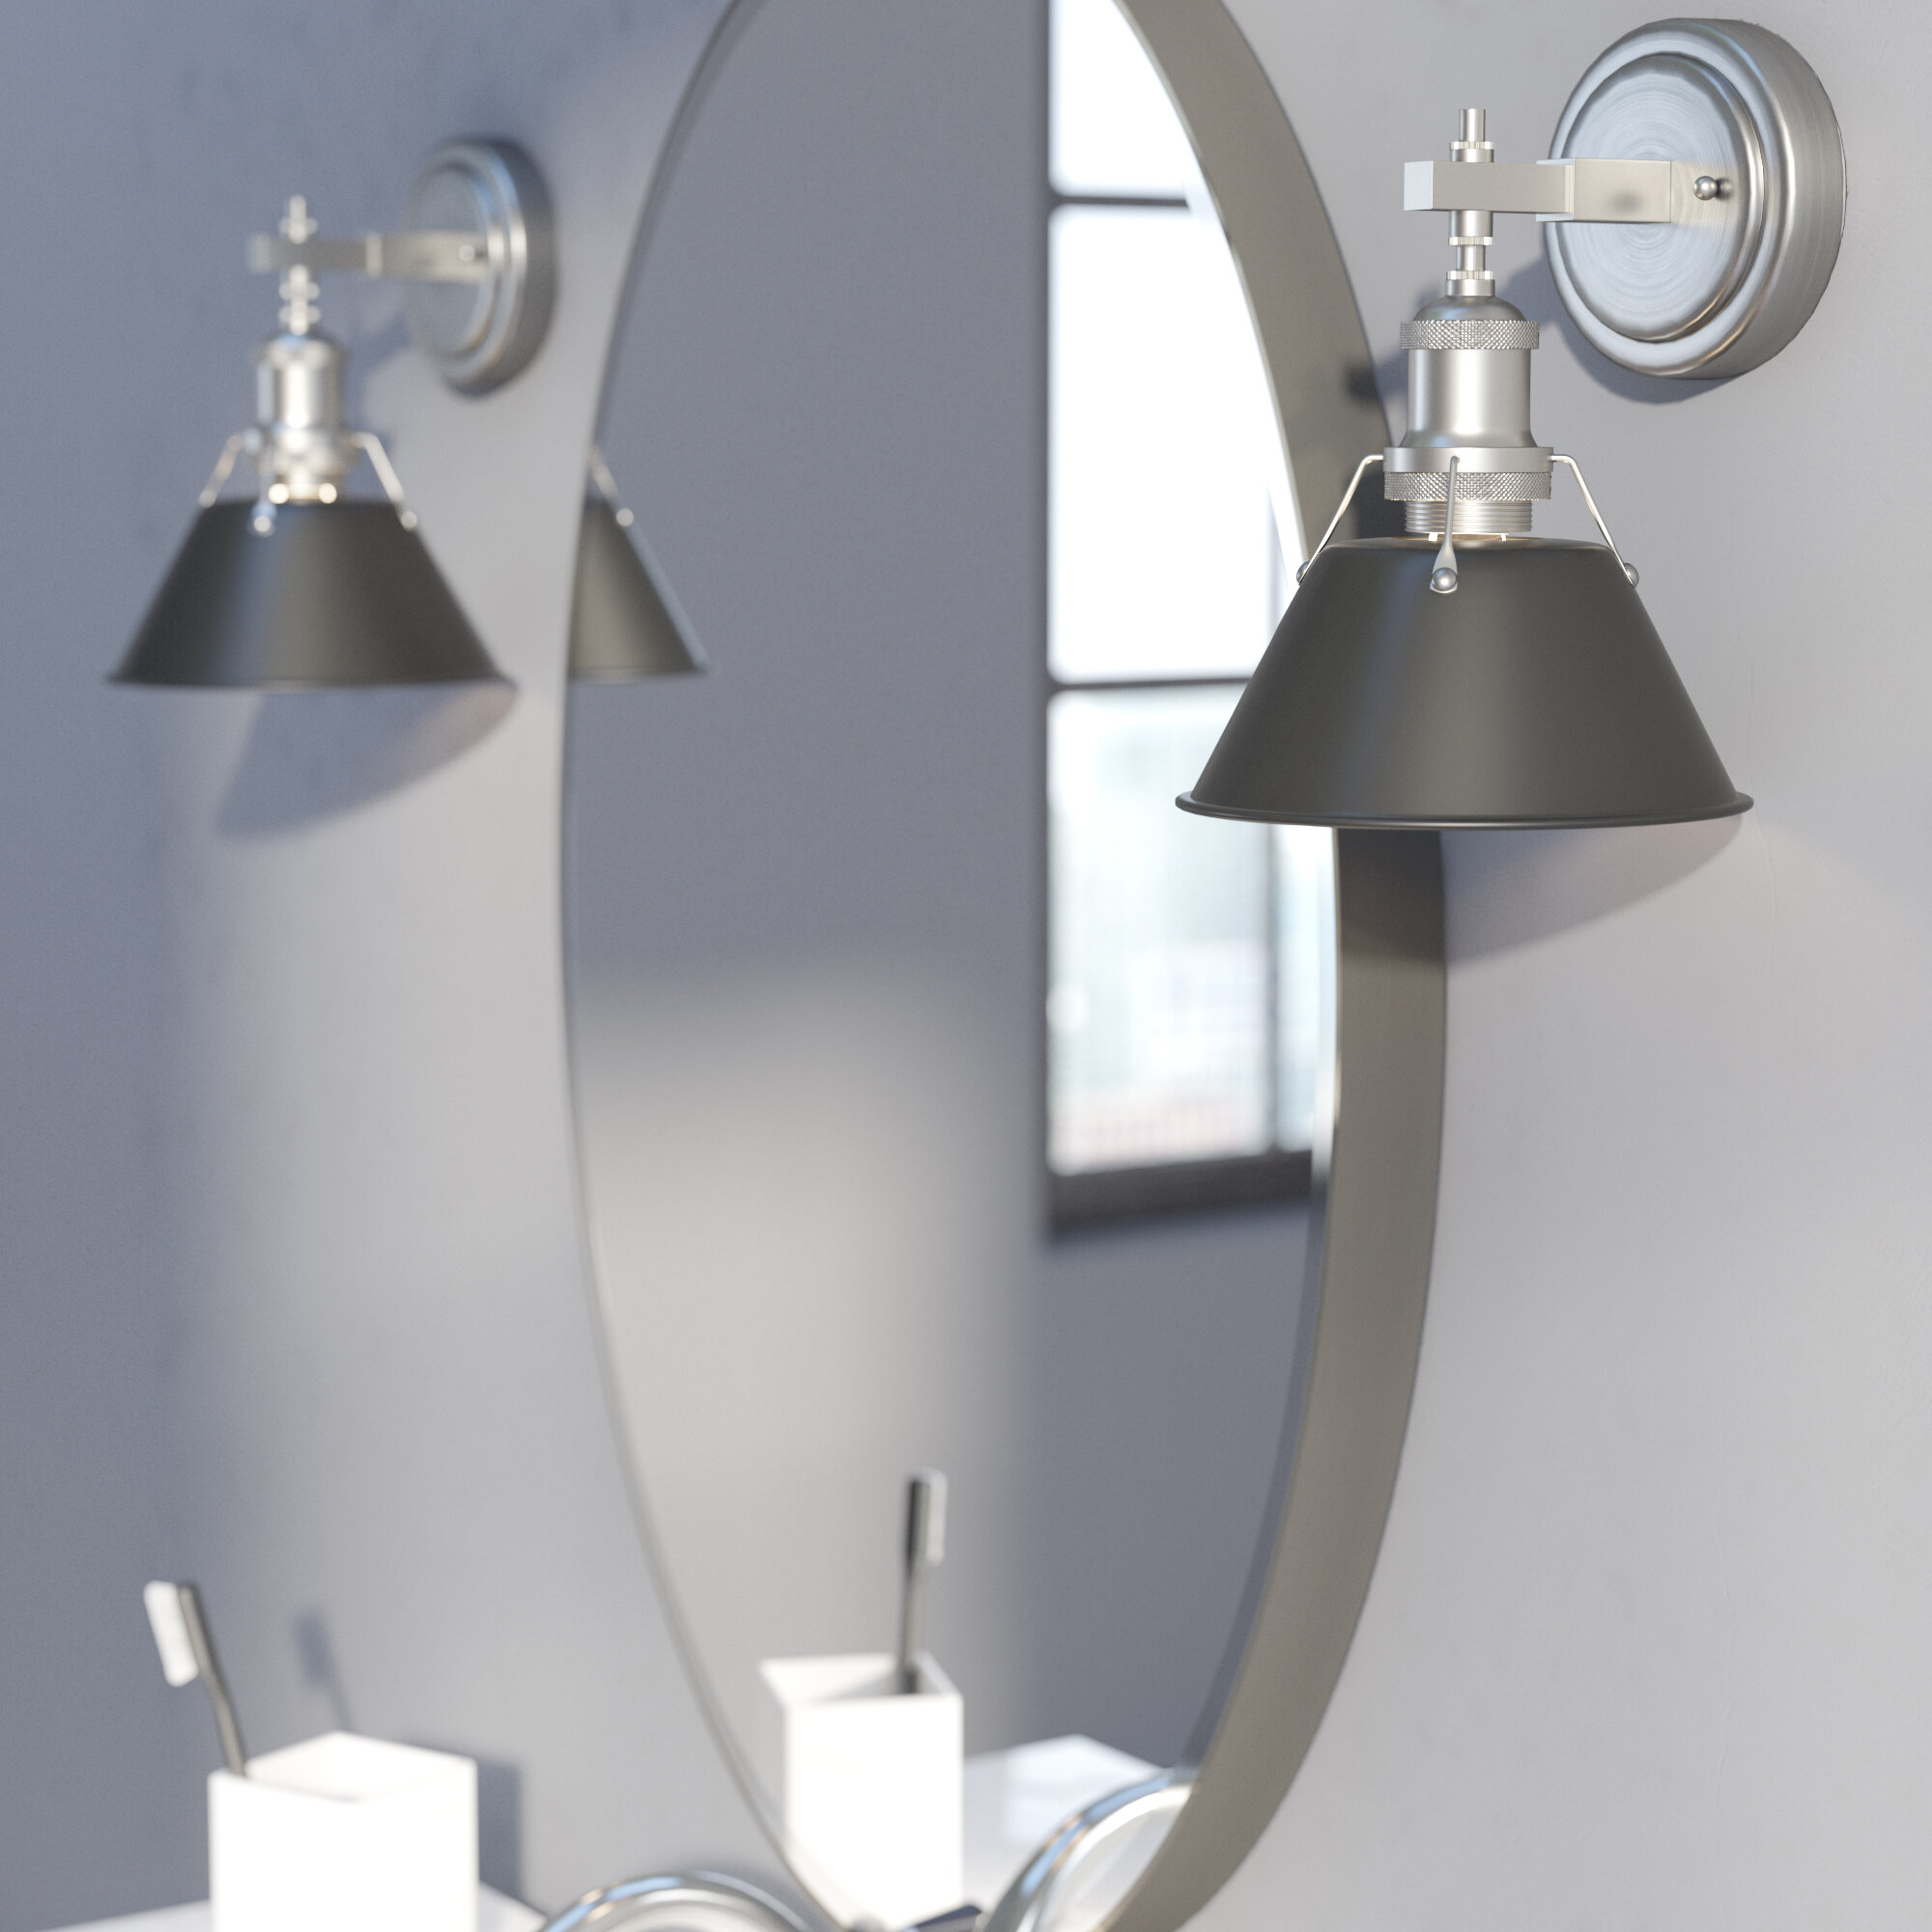 f wall bathroom bouillotte e chapman pin comfort cross sconce visual wide inch lighting capitol